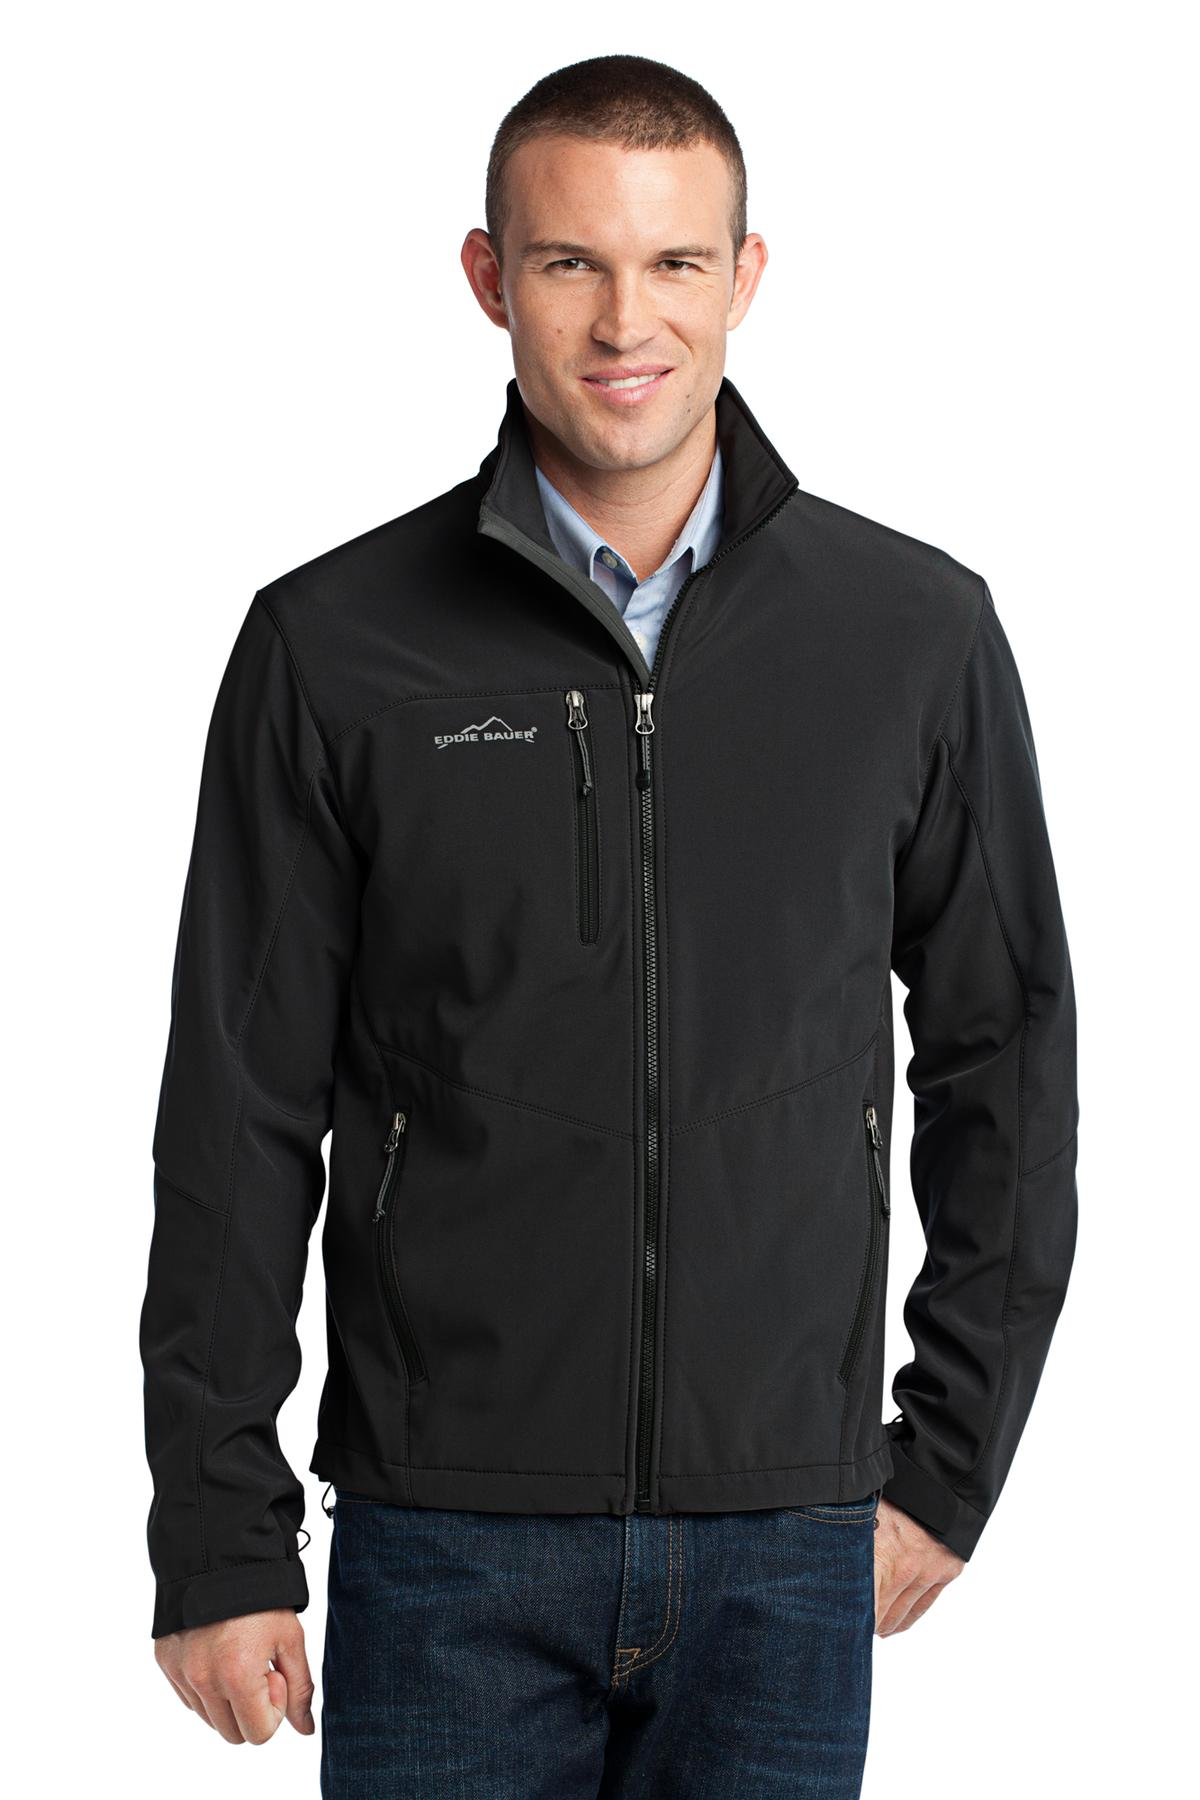 Eddie Bauer ®  - Soft Shell Jacket. EB530 - Black